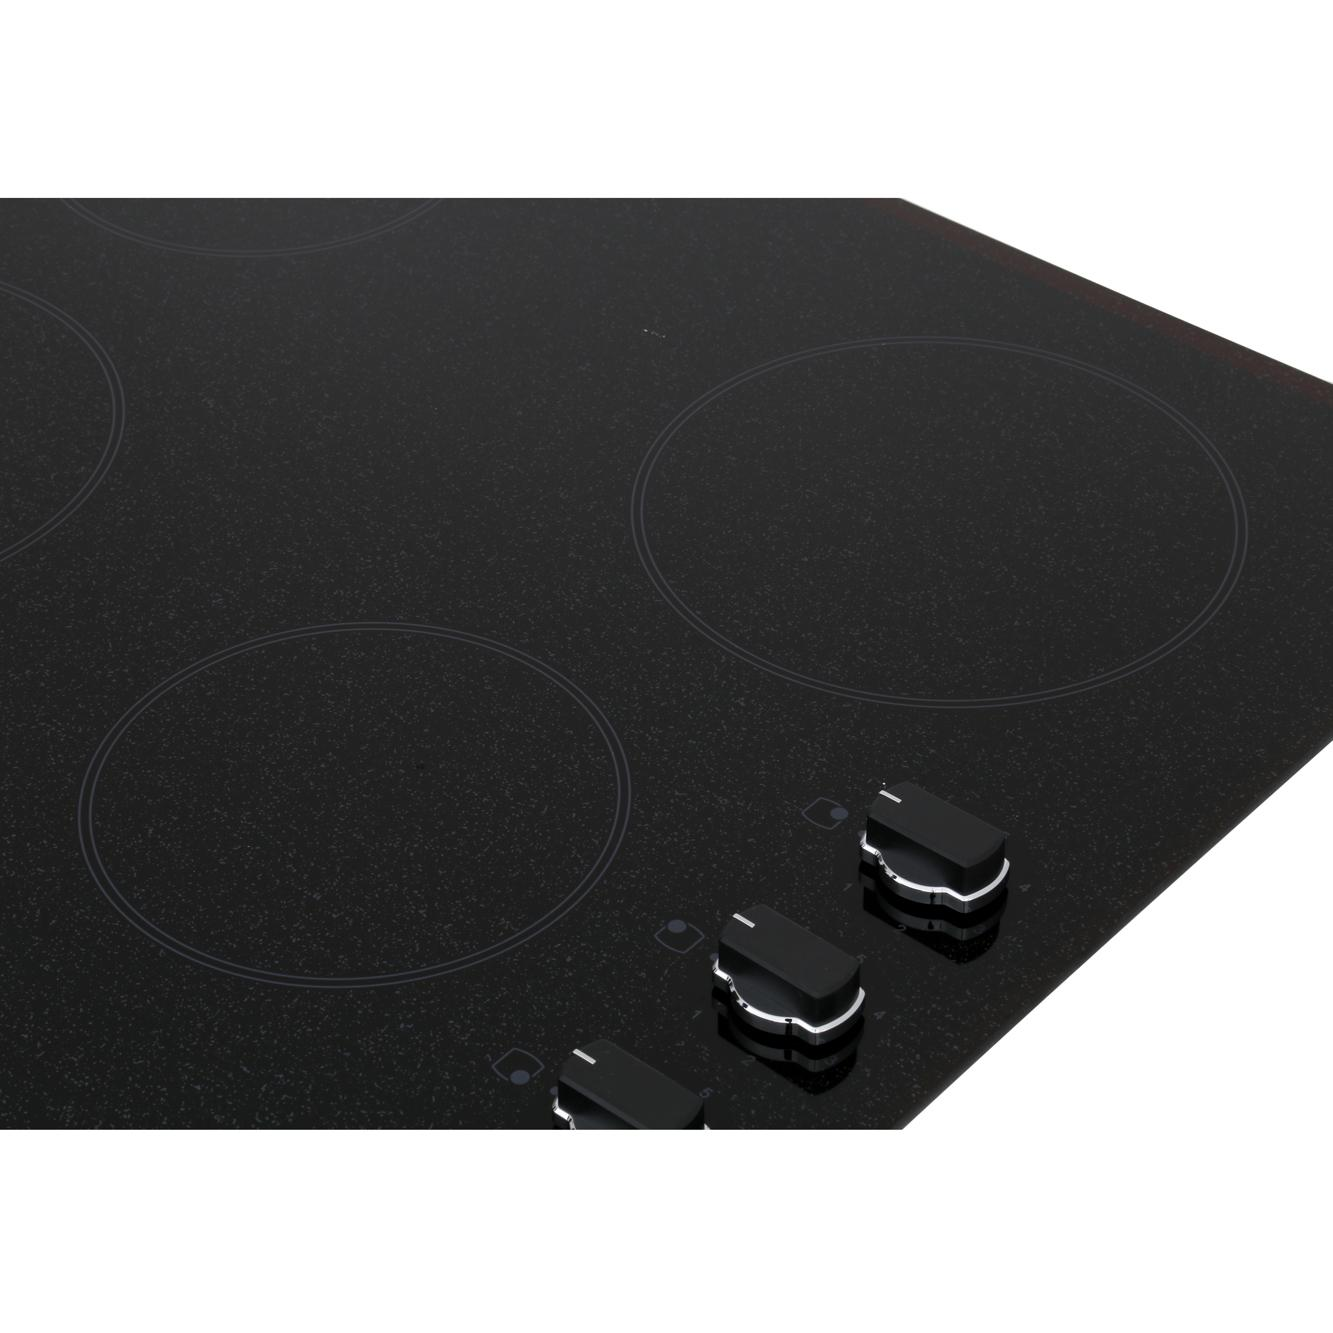 Buy Belling Ch60r Granite Ceramic Hob 444441156